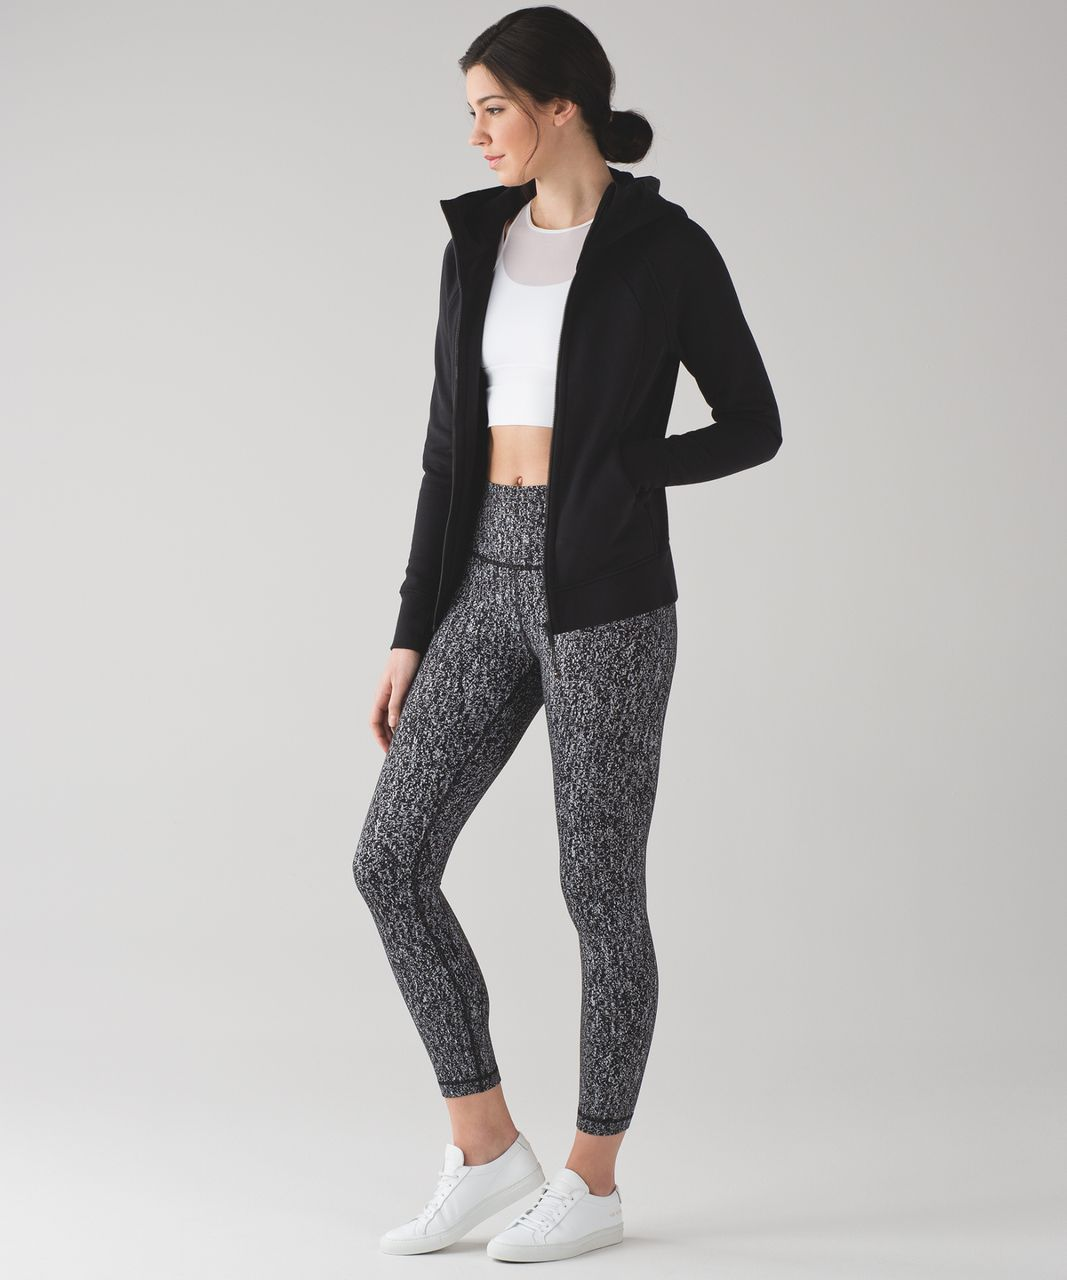 Lululemon High Times Pant - Luon Suited Jacquard Black White